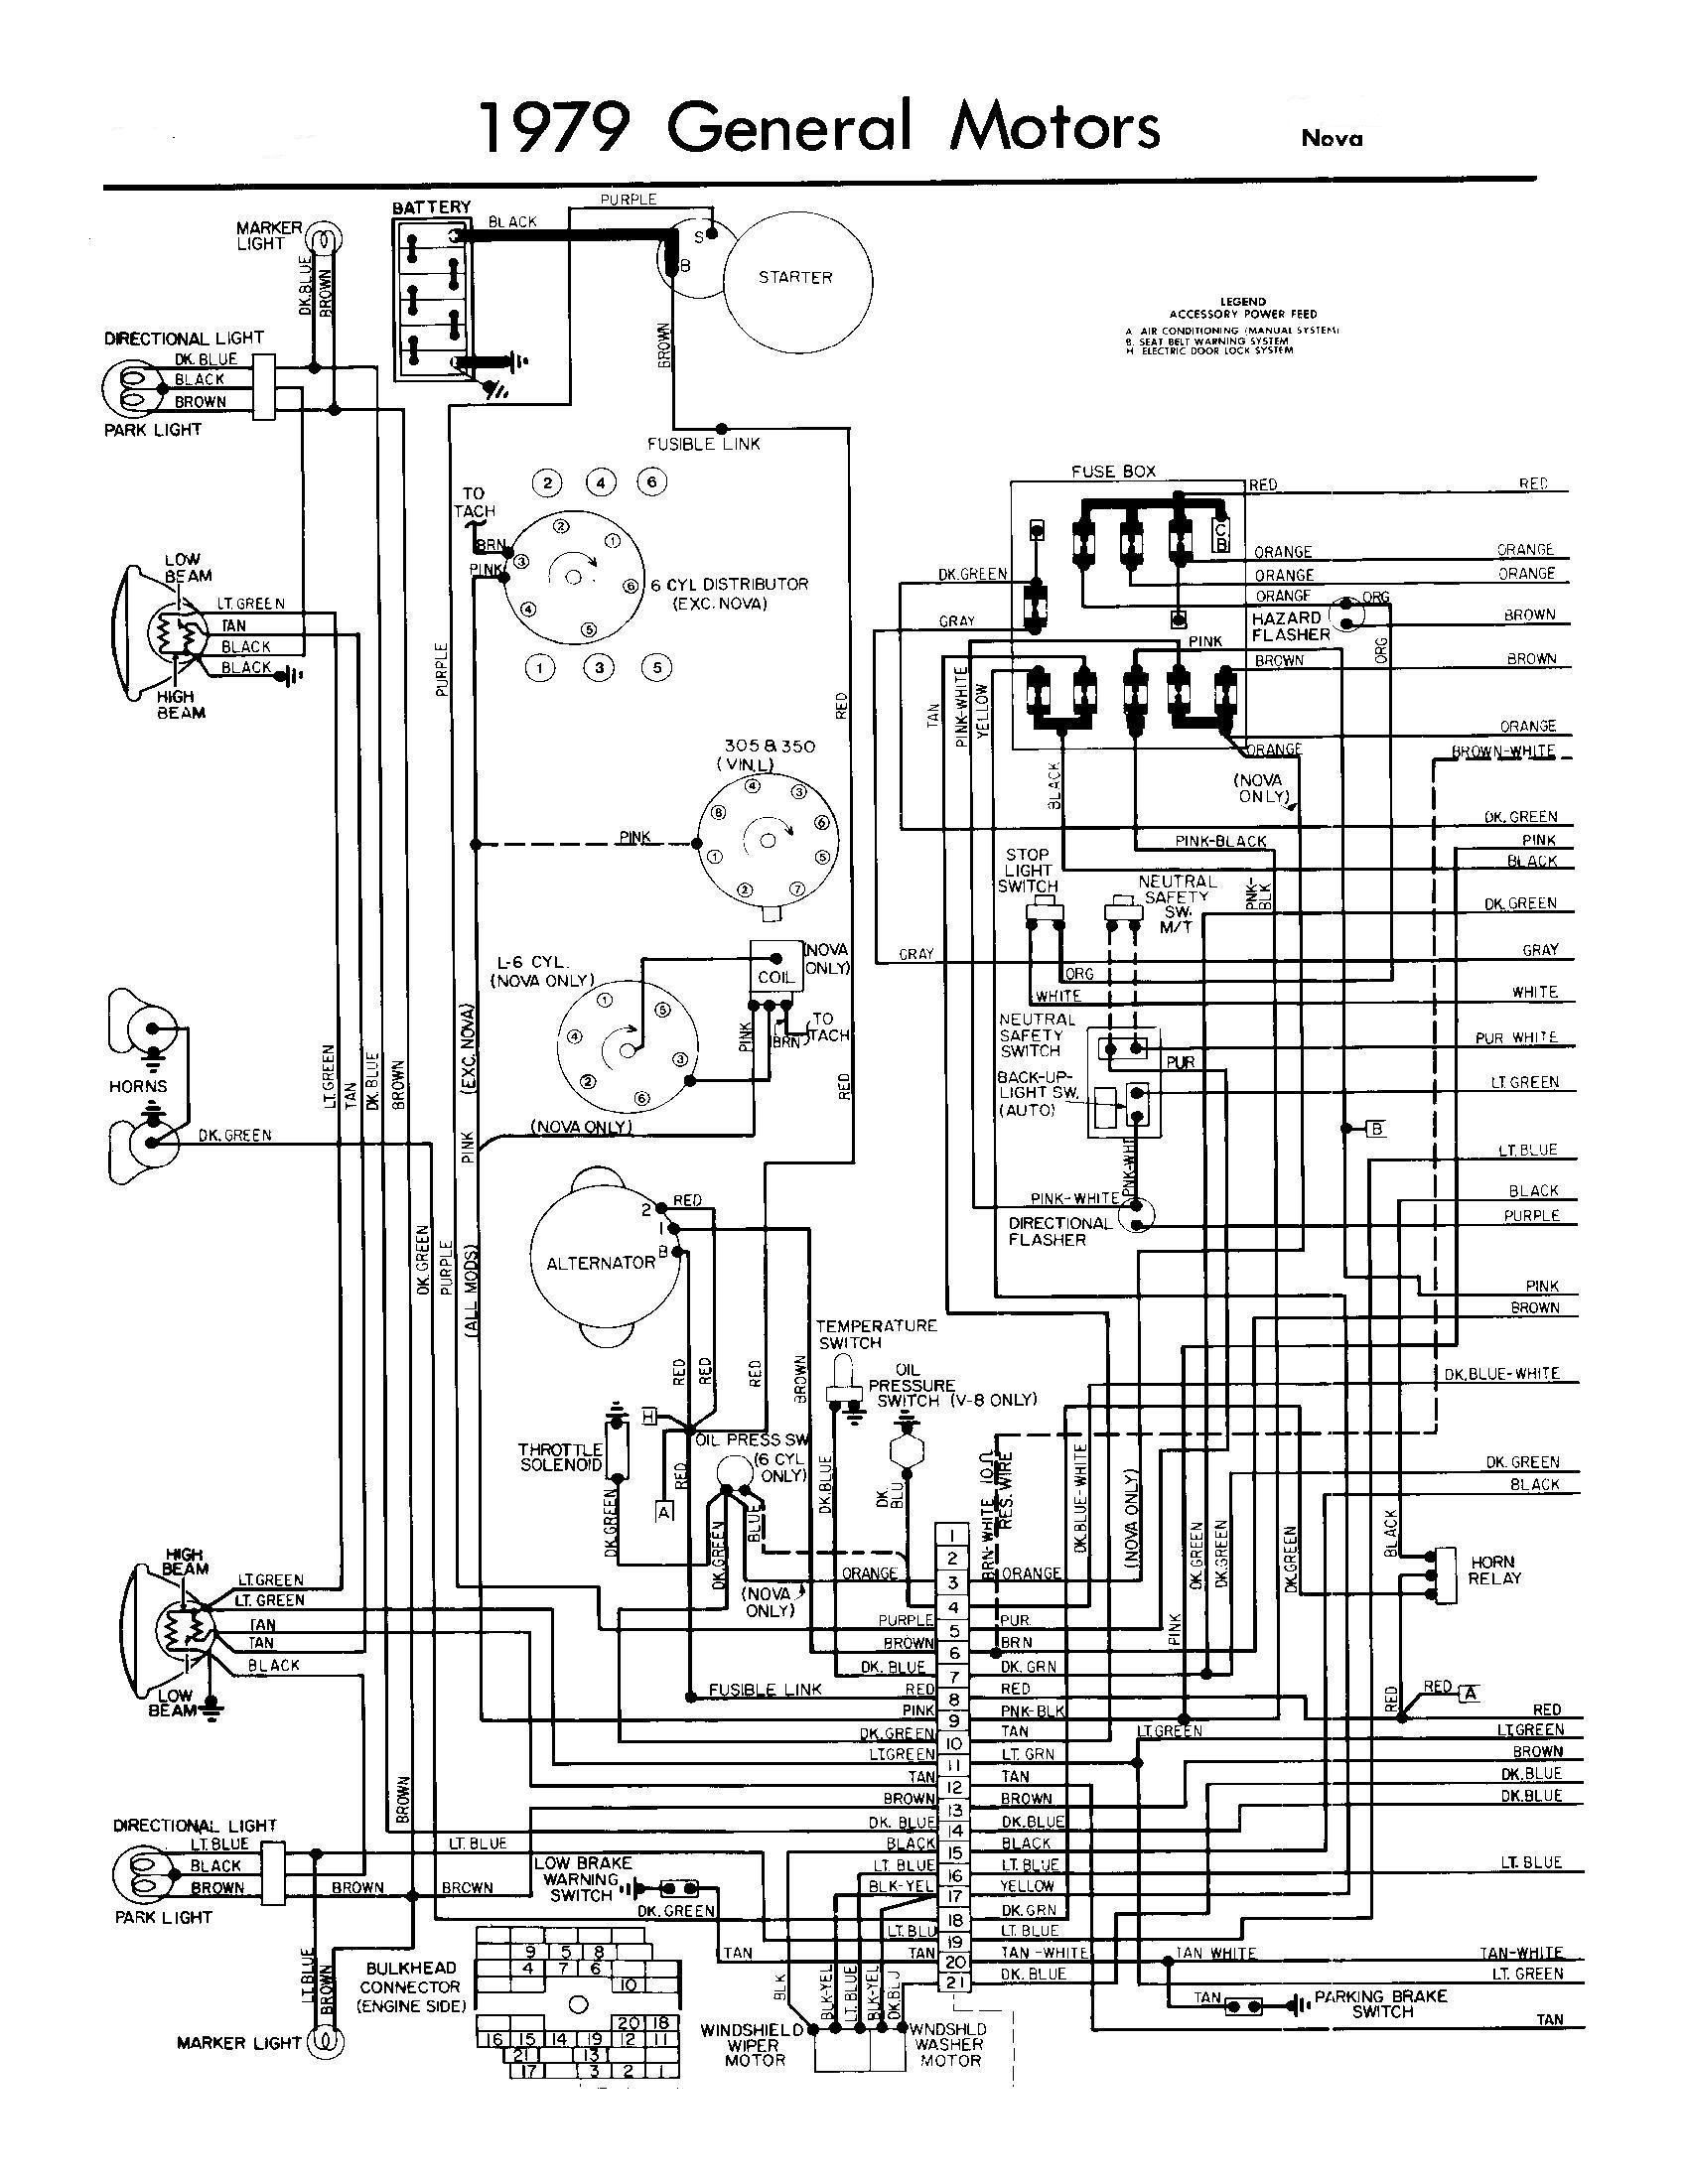 all generation wiring schematics chevy nova forum custom 79 gmc rh pinterest com 1975 gmc truck wiring diagrams chevrolet truck wiring diagrams